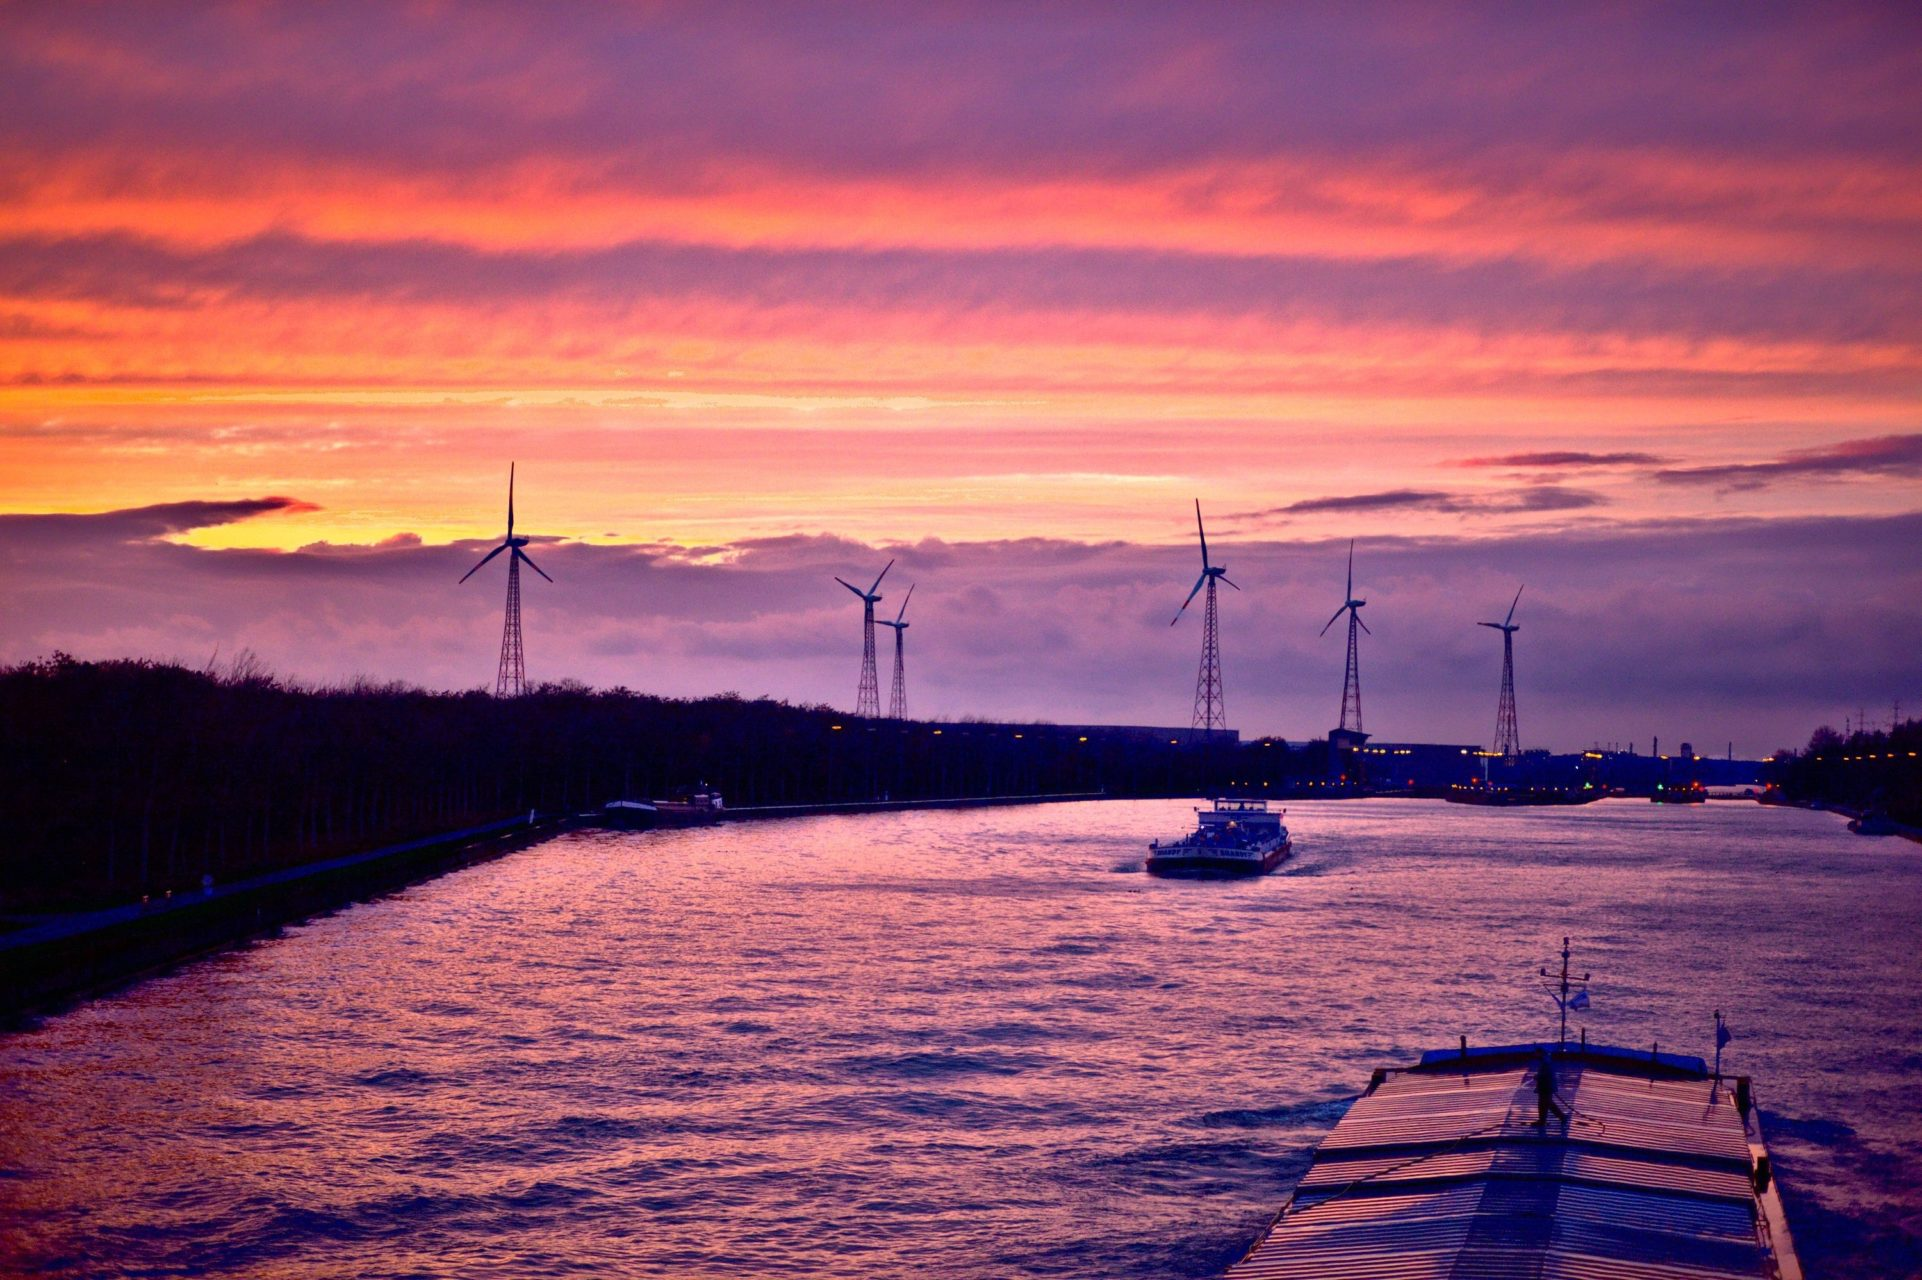 Five high-tech windmills along a river at sunset